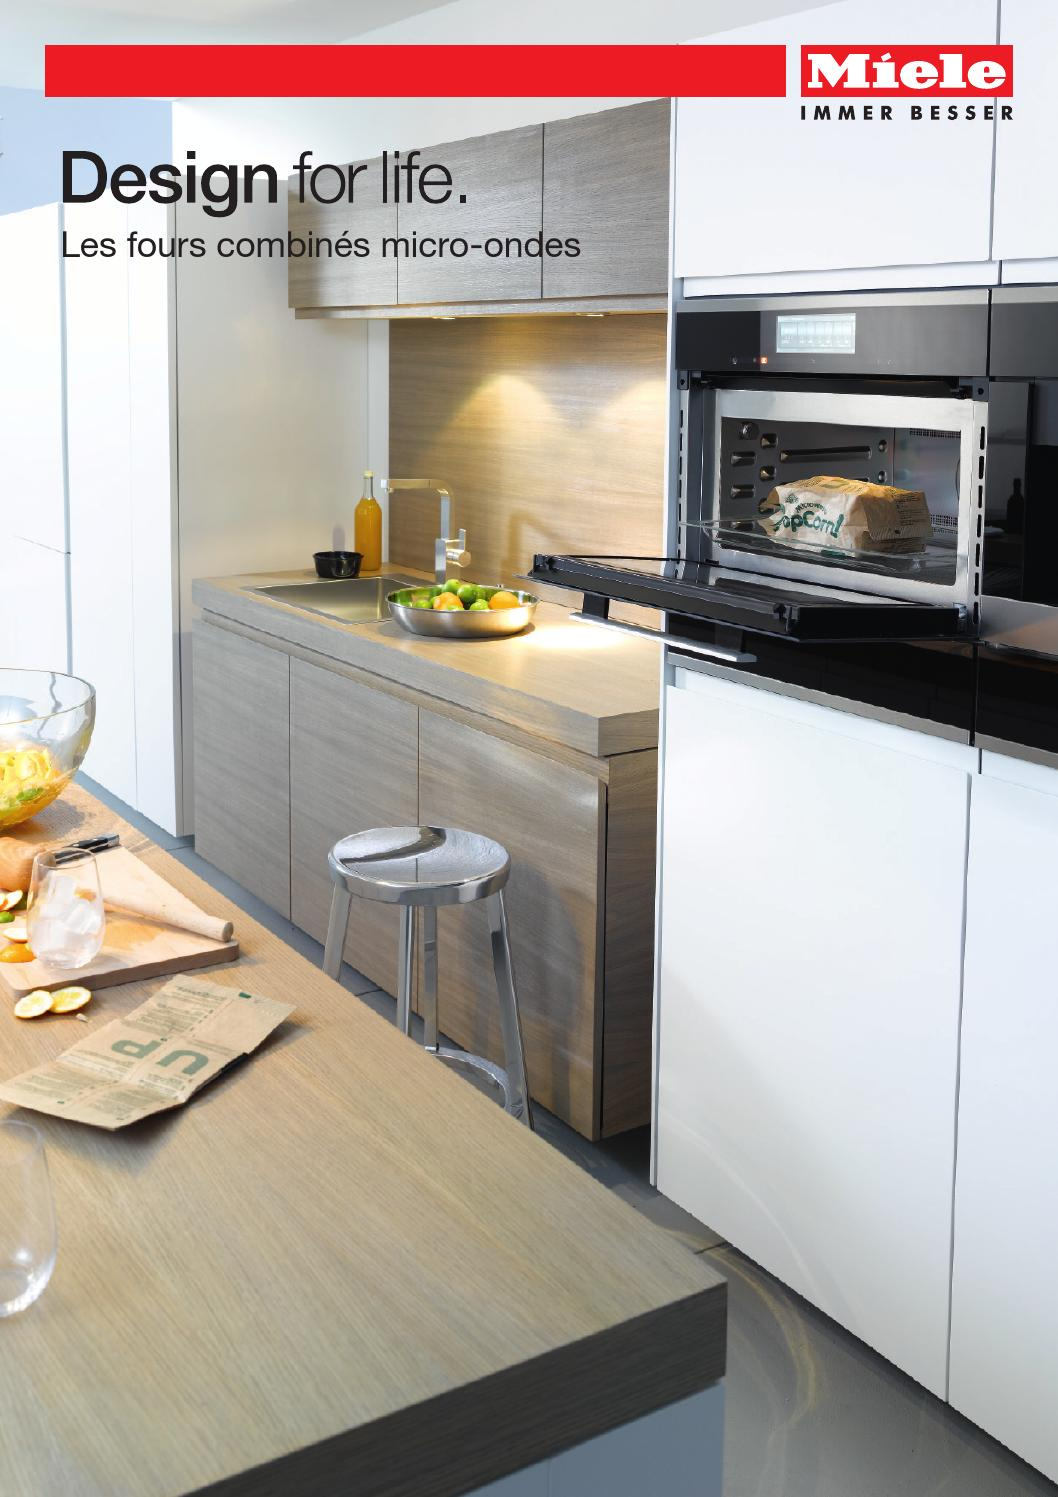 miele catalogue les fours combin s micro ondes fr by miele issuu. Black Bedroom Furniture Sets. Home Design Ideas